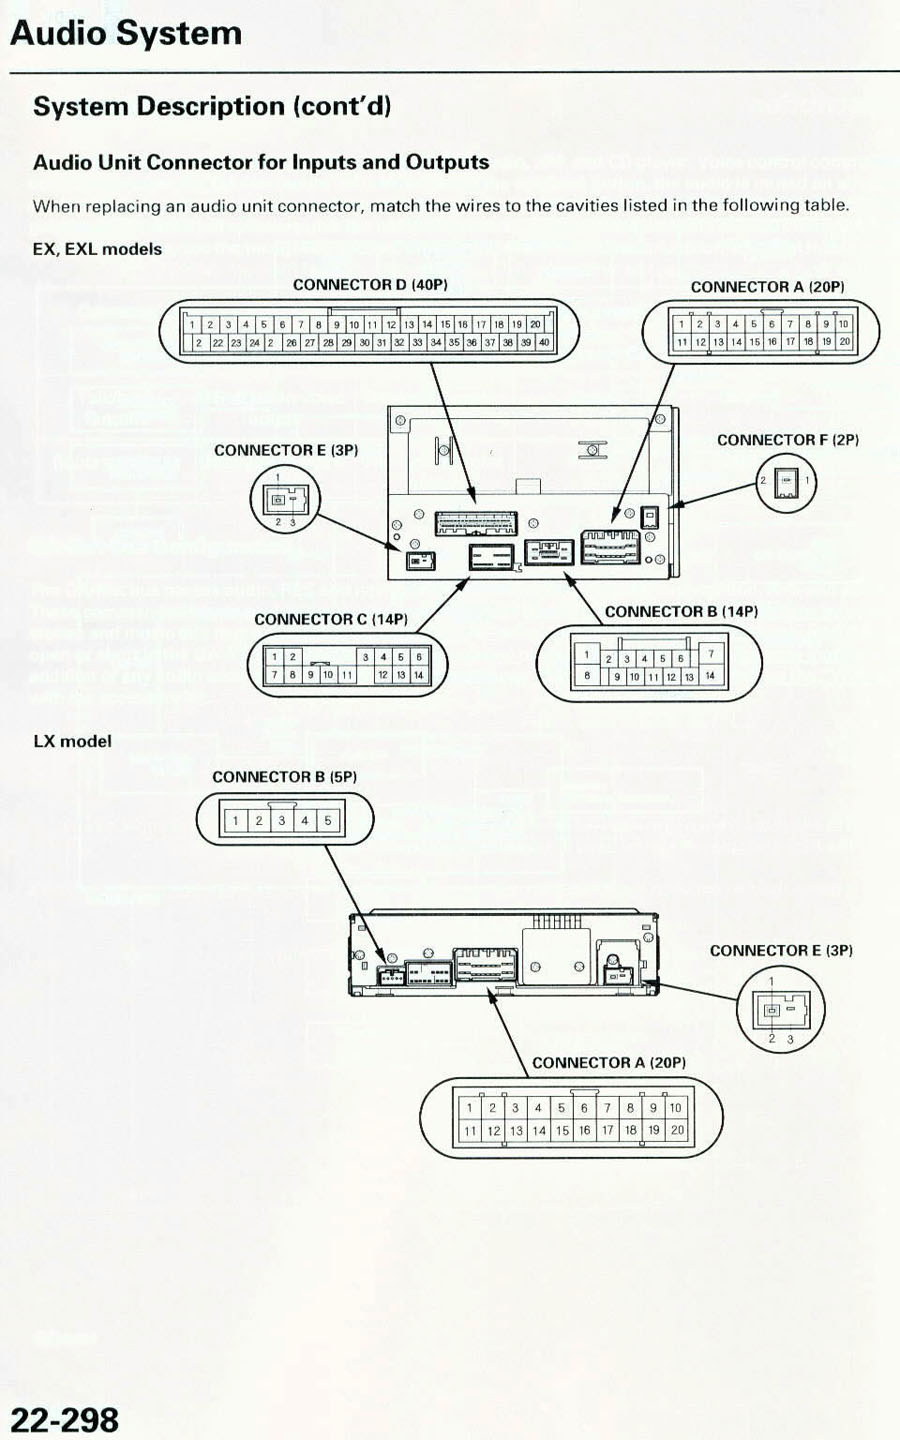 32969d1200063279 re factory subwoofer aftermarket hu audio_connector 2006 re factory subwoofer and aftermarket hu honda pilot honda 2004 Honda Pilot Engine Diagram at cos-gaming.co